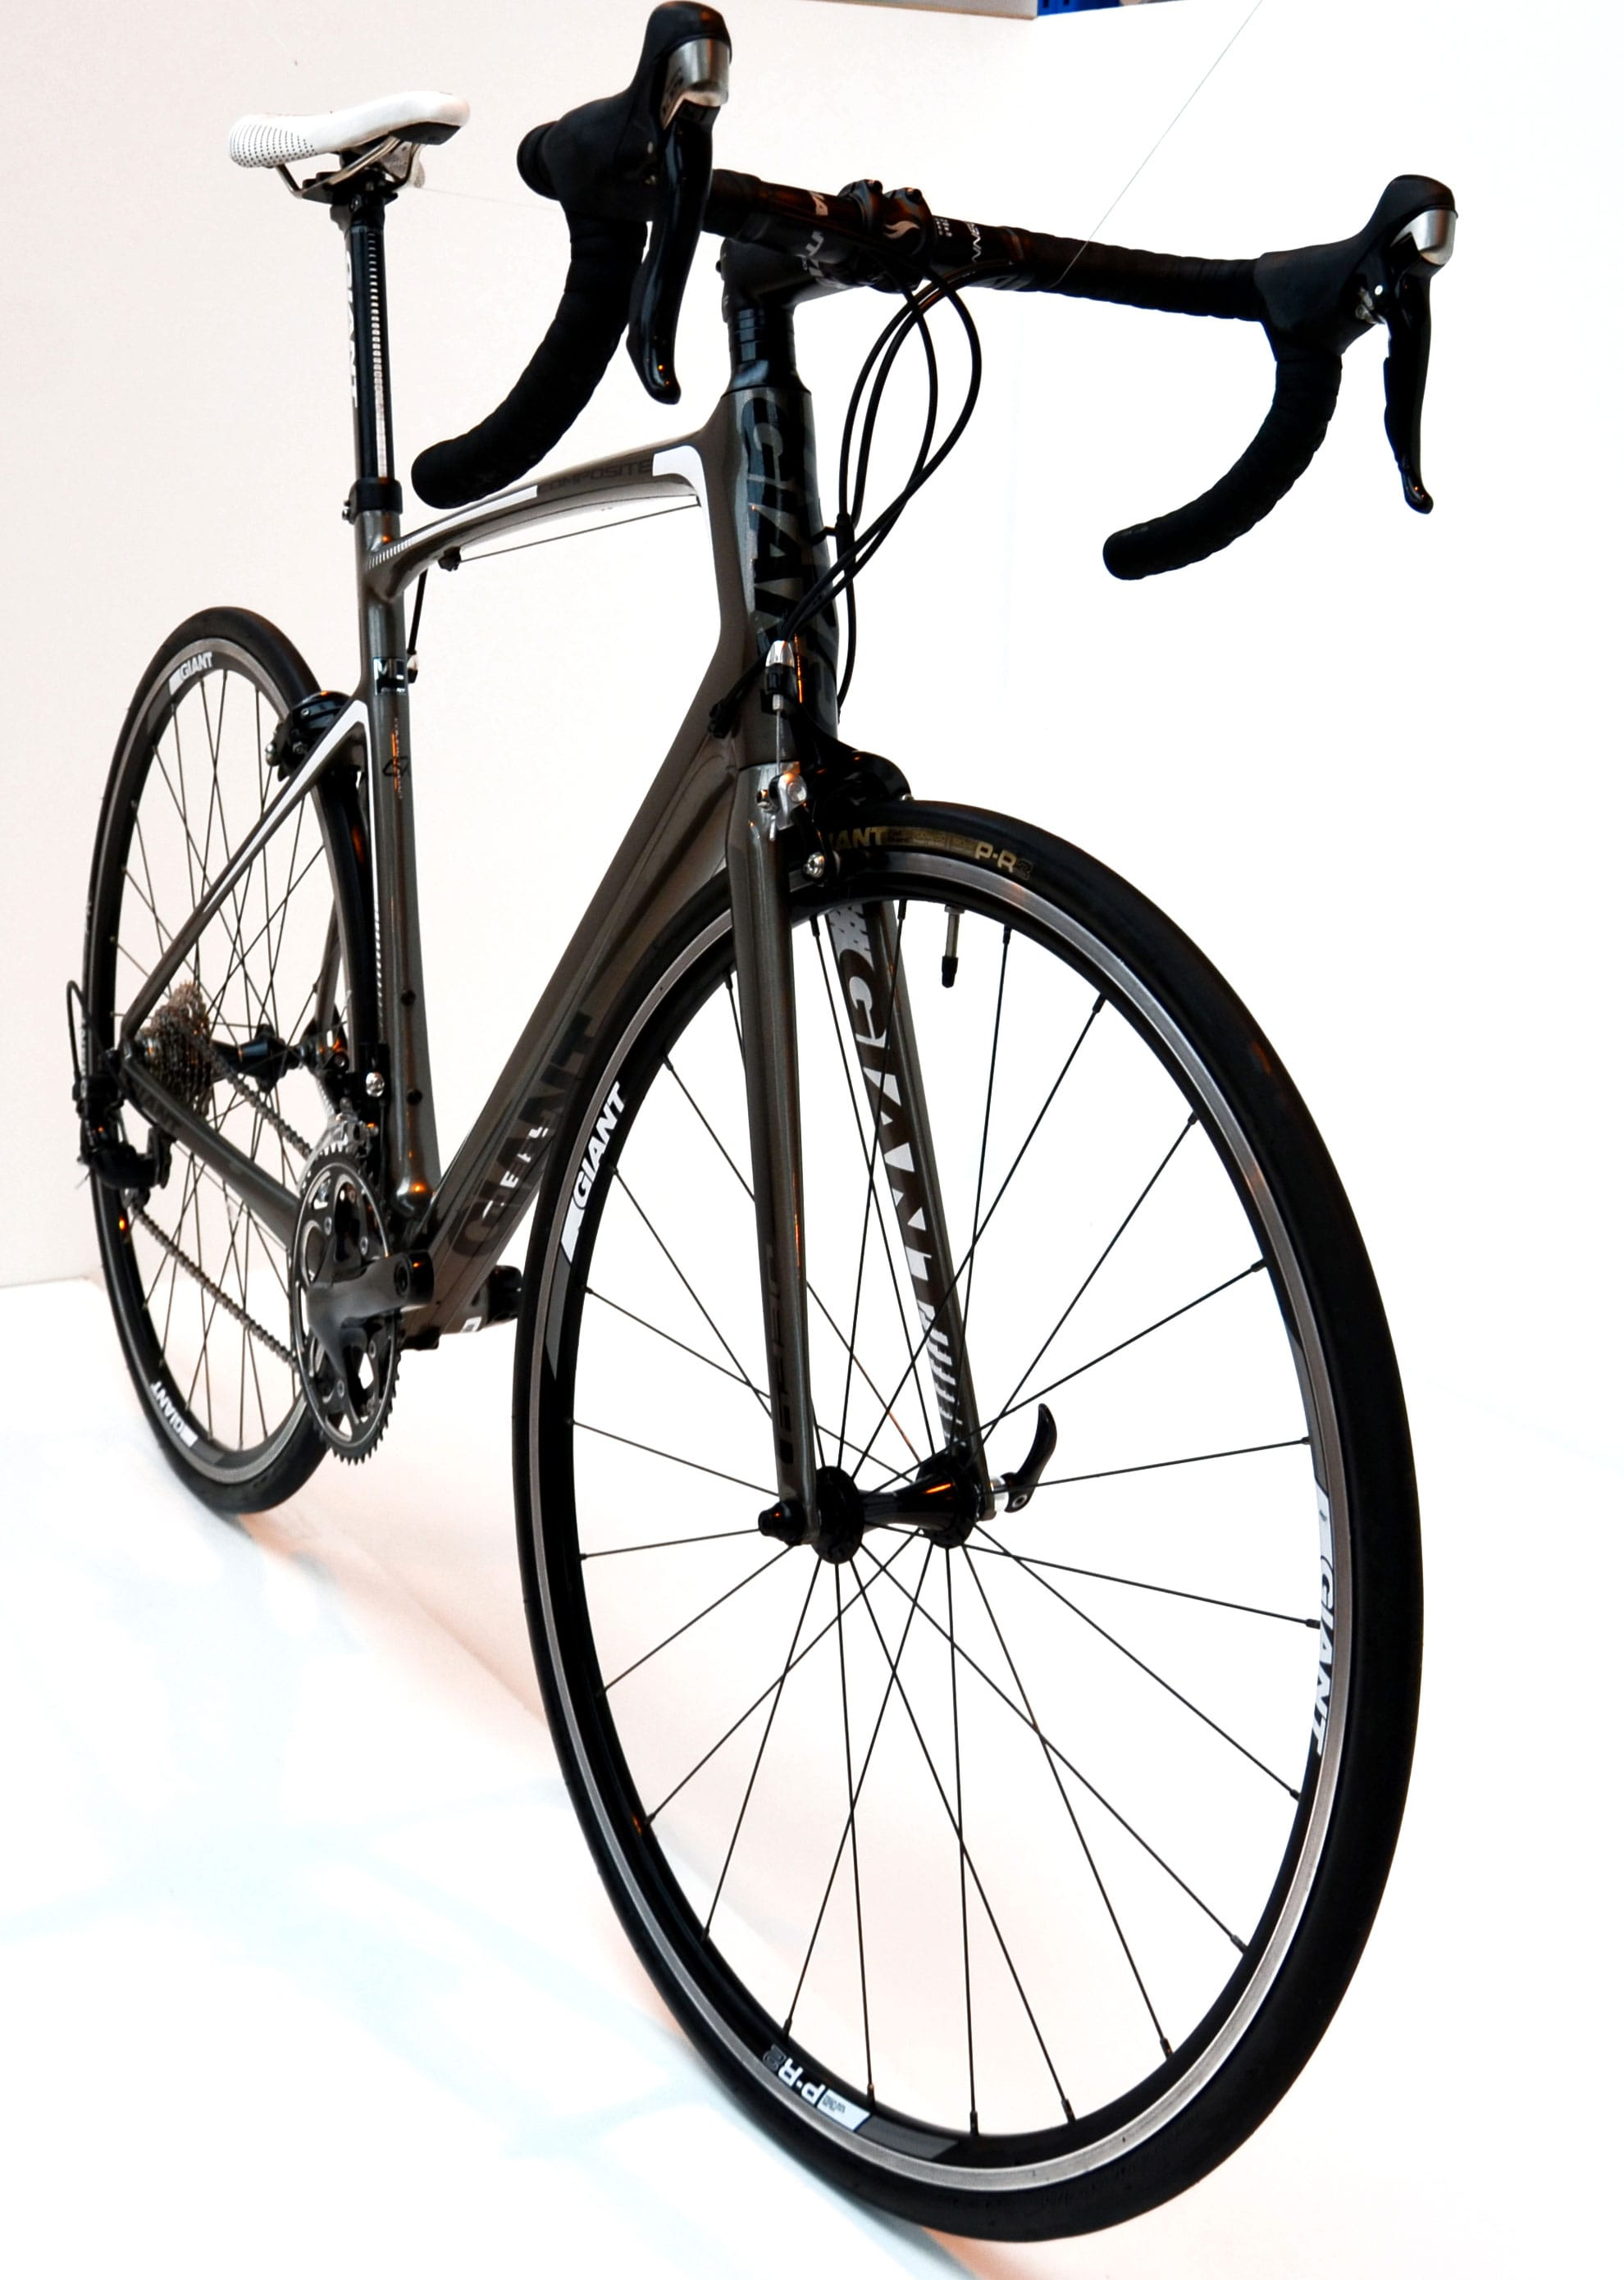 dcedd1118d7 Giant Defy Composite 2 EX TEAM Road Bike 2014 | All Terrain Cycles